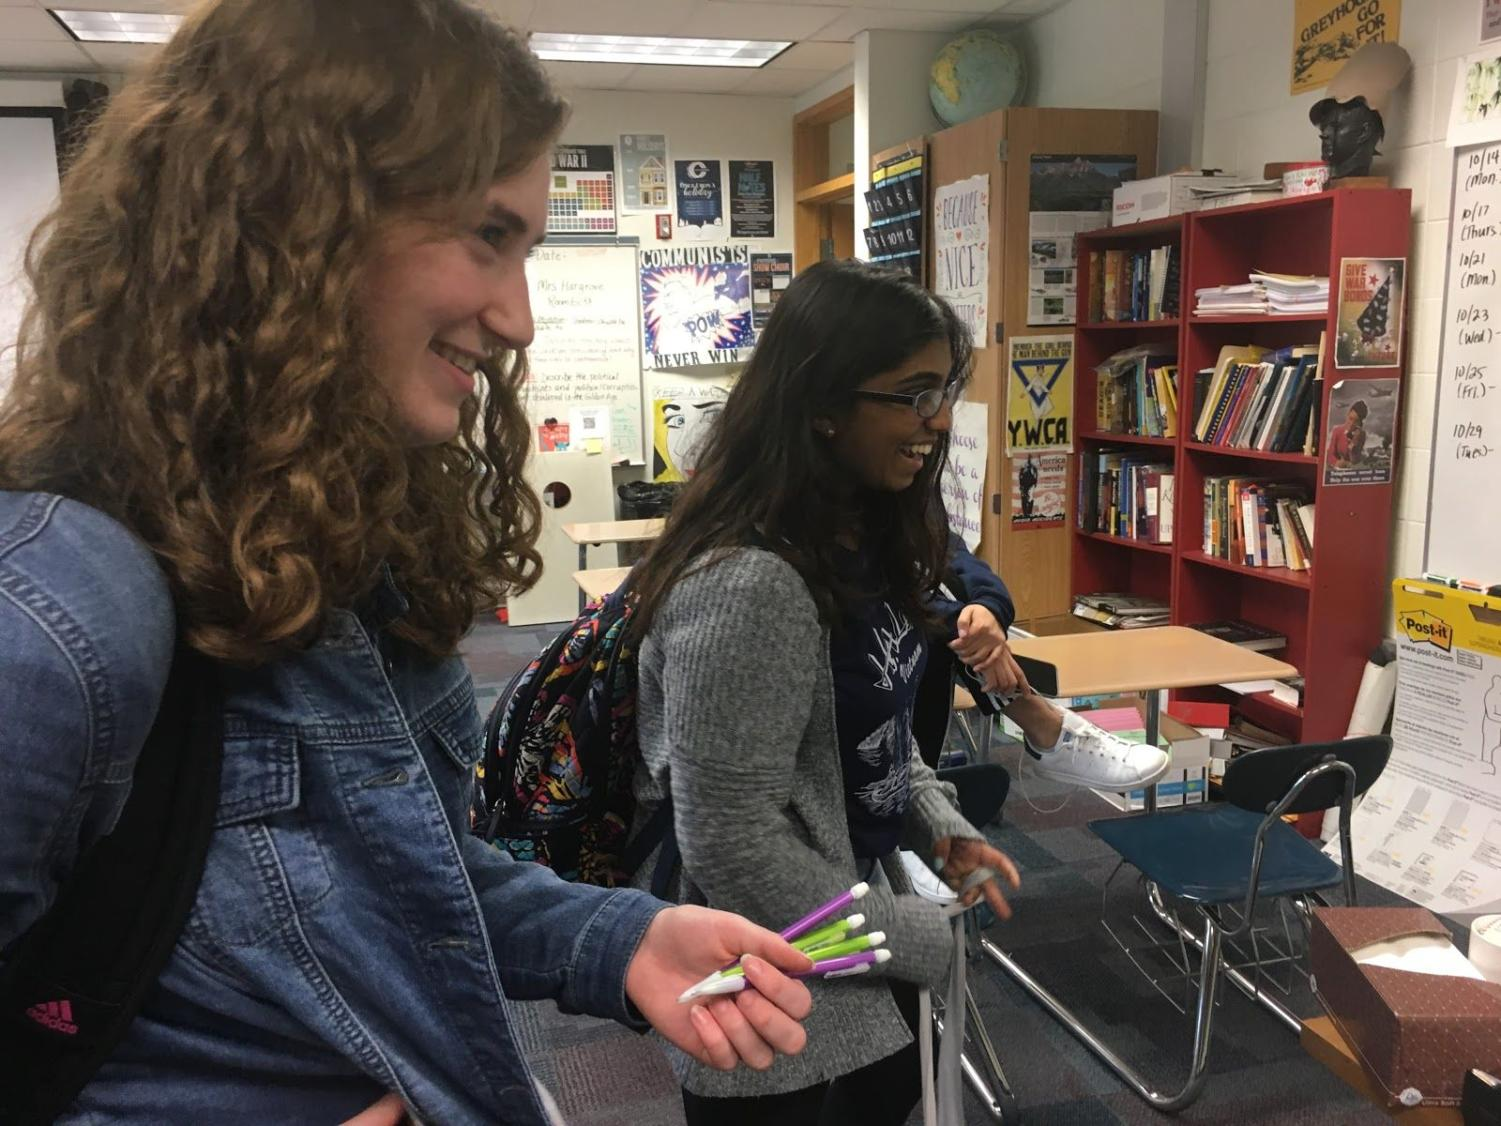 Sarah Konrad, design head and junior, takes part in a conversation after school with her friends. Konrad said that right now, the TEDx club is focused on increasing its membership.